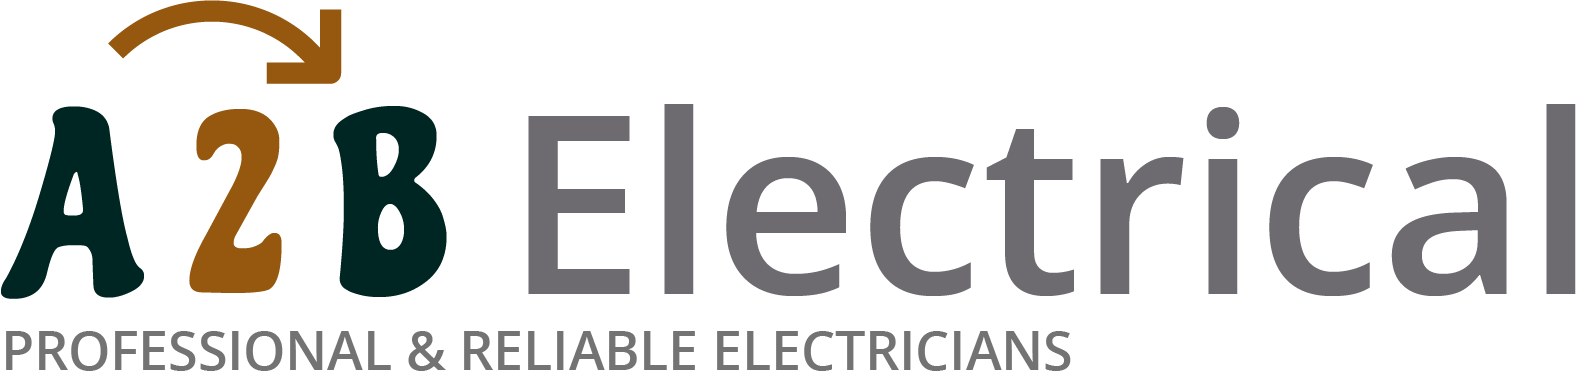 If you have electrical wiring problems in Chelsea, we can provide an electrician to have a look for you.